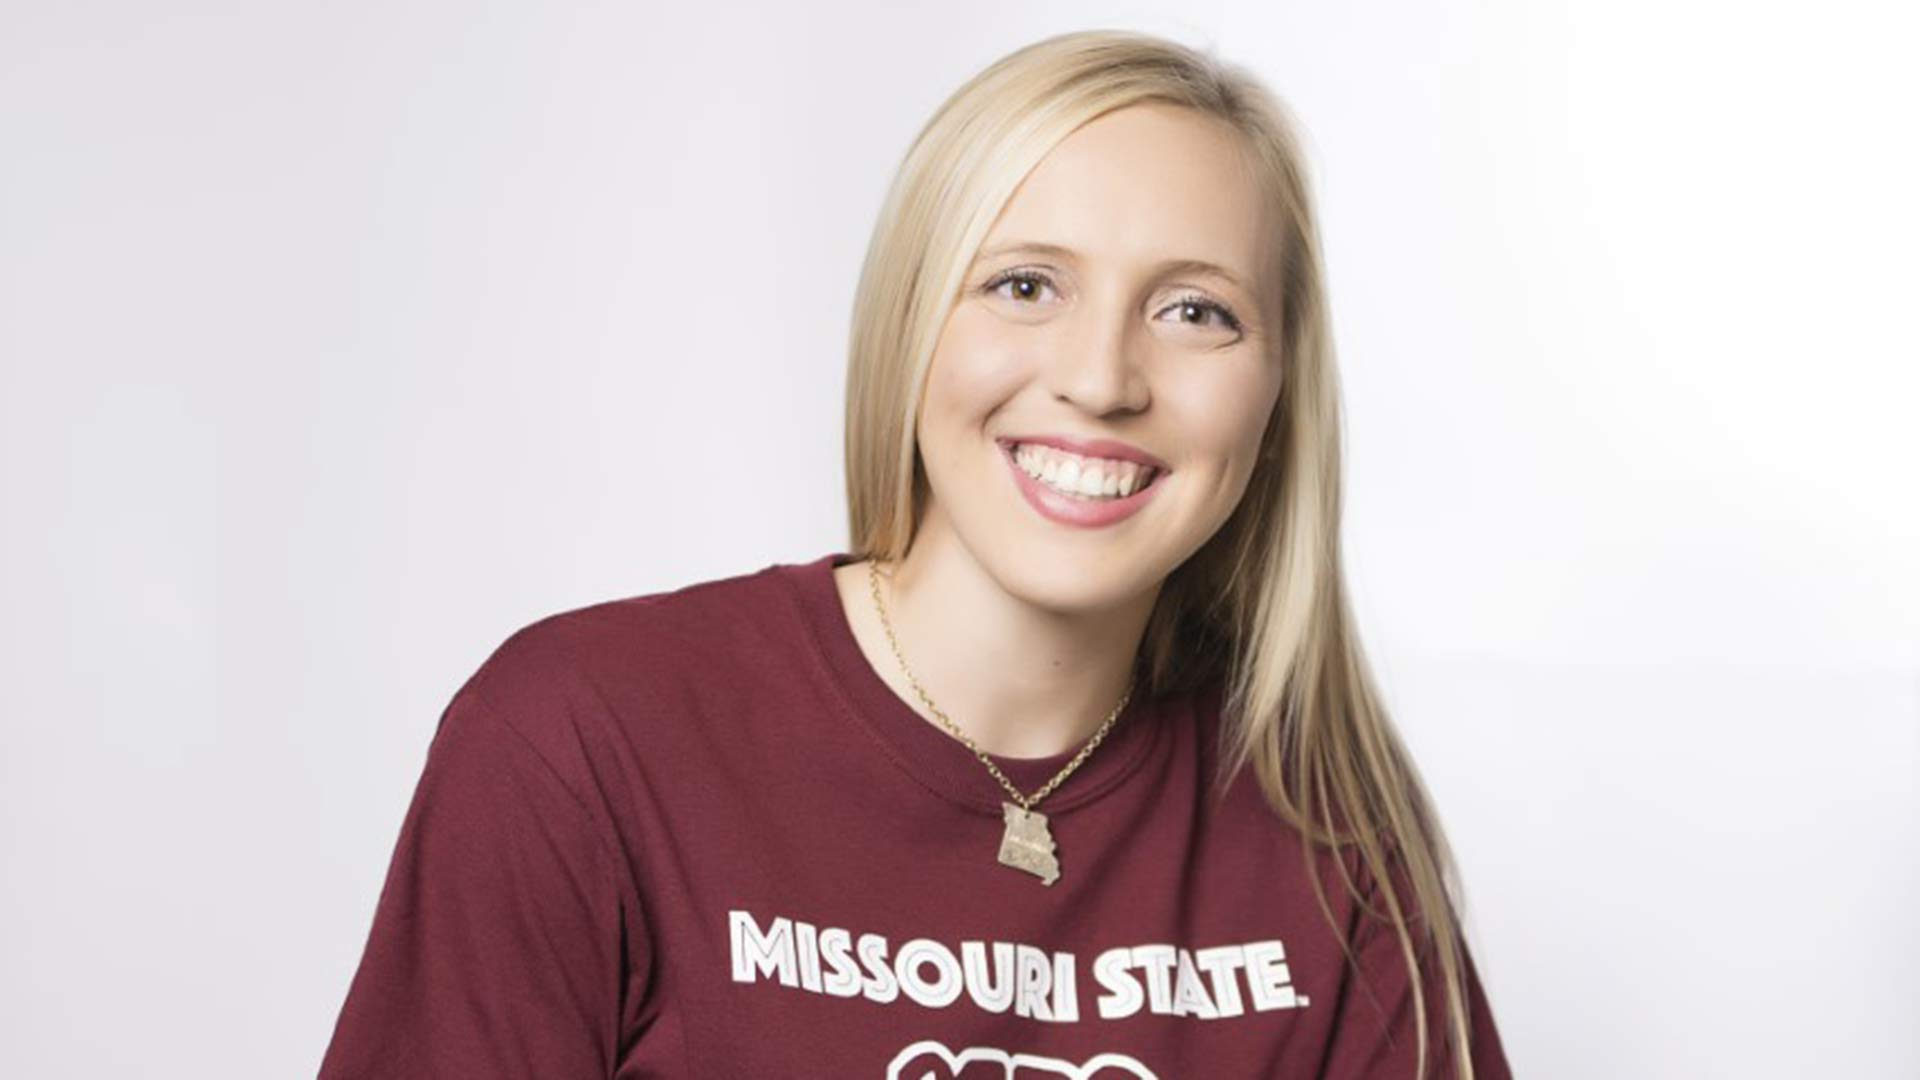 Hannah Harrill wearing Missouri State T-shirt and smiling at camera.